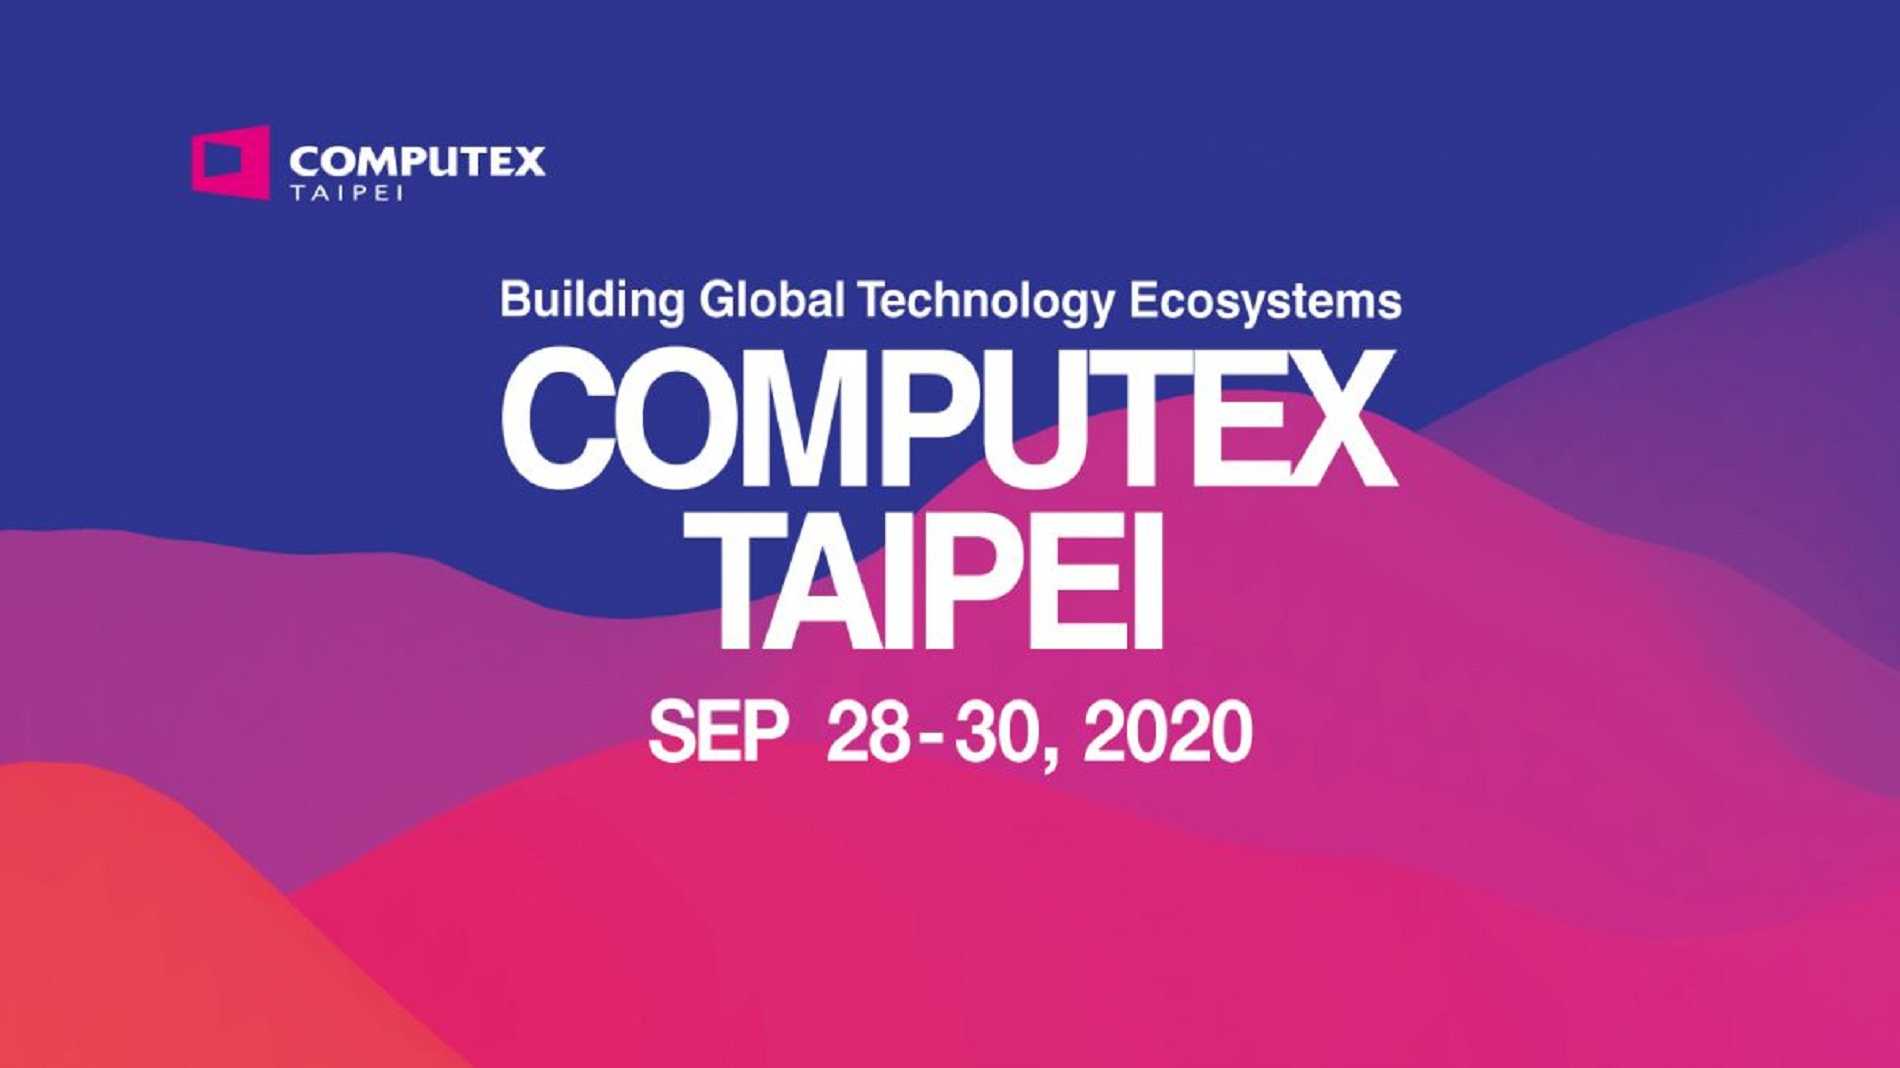 ComputeX Surprisingly Reschedules Its Event For This Year Amid The COVID-19 Outbreak